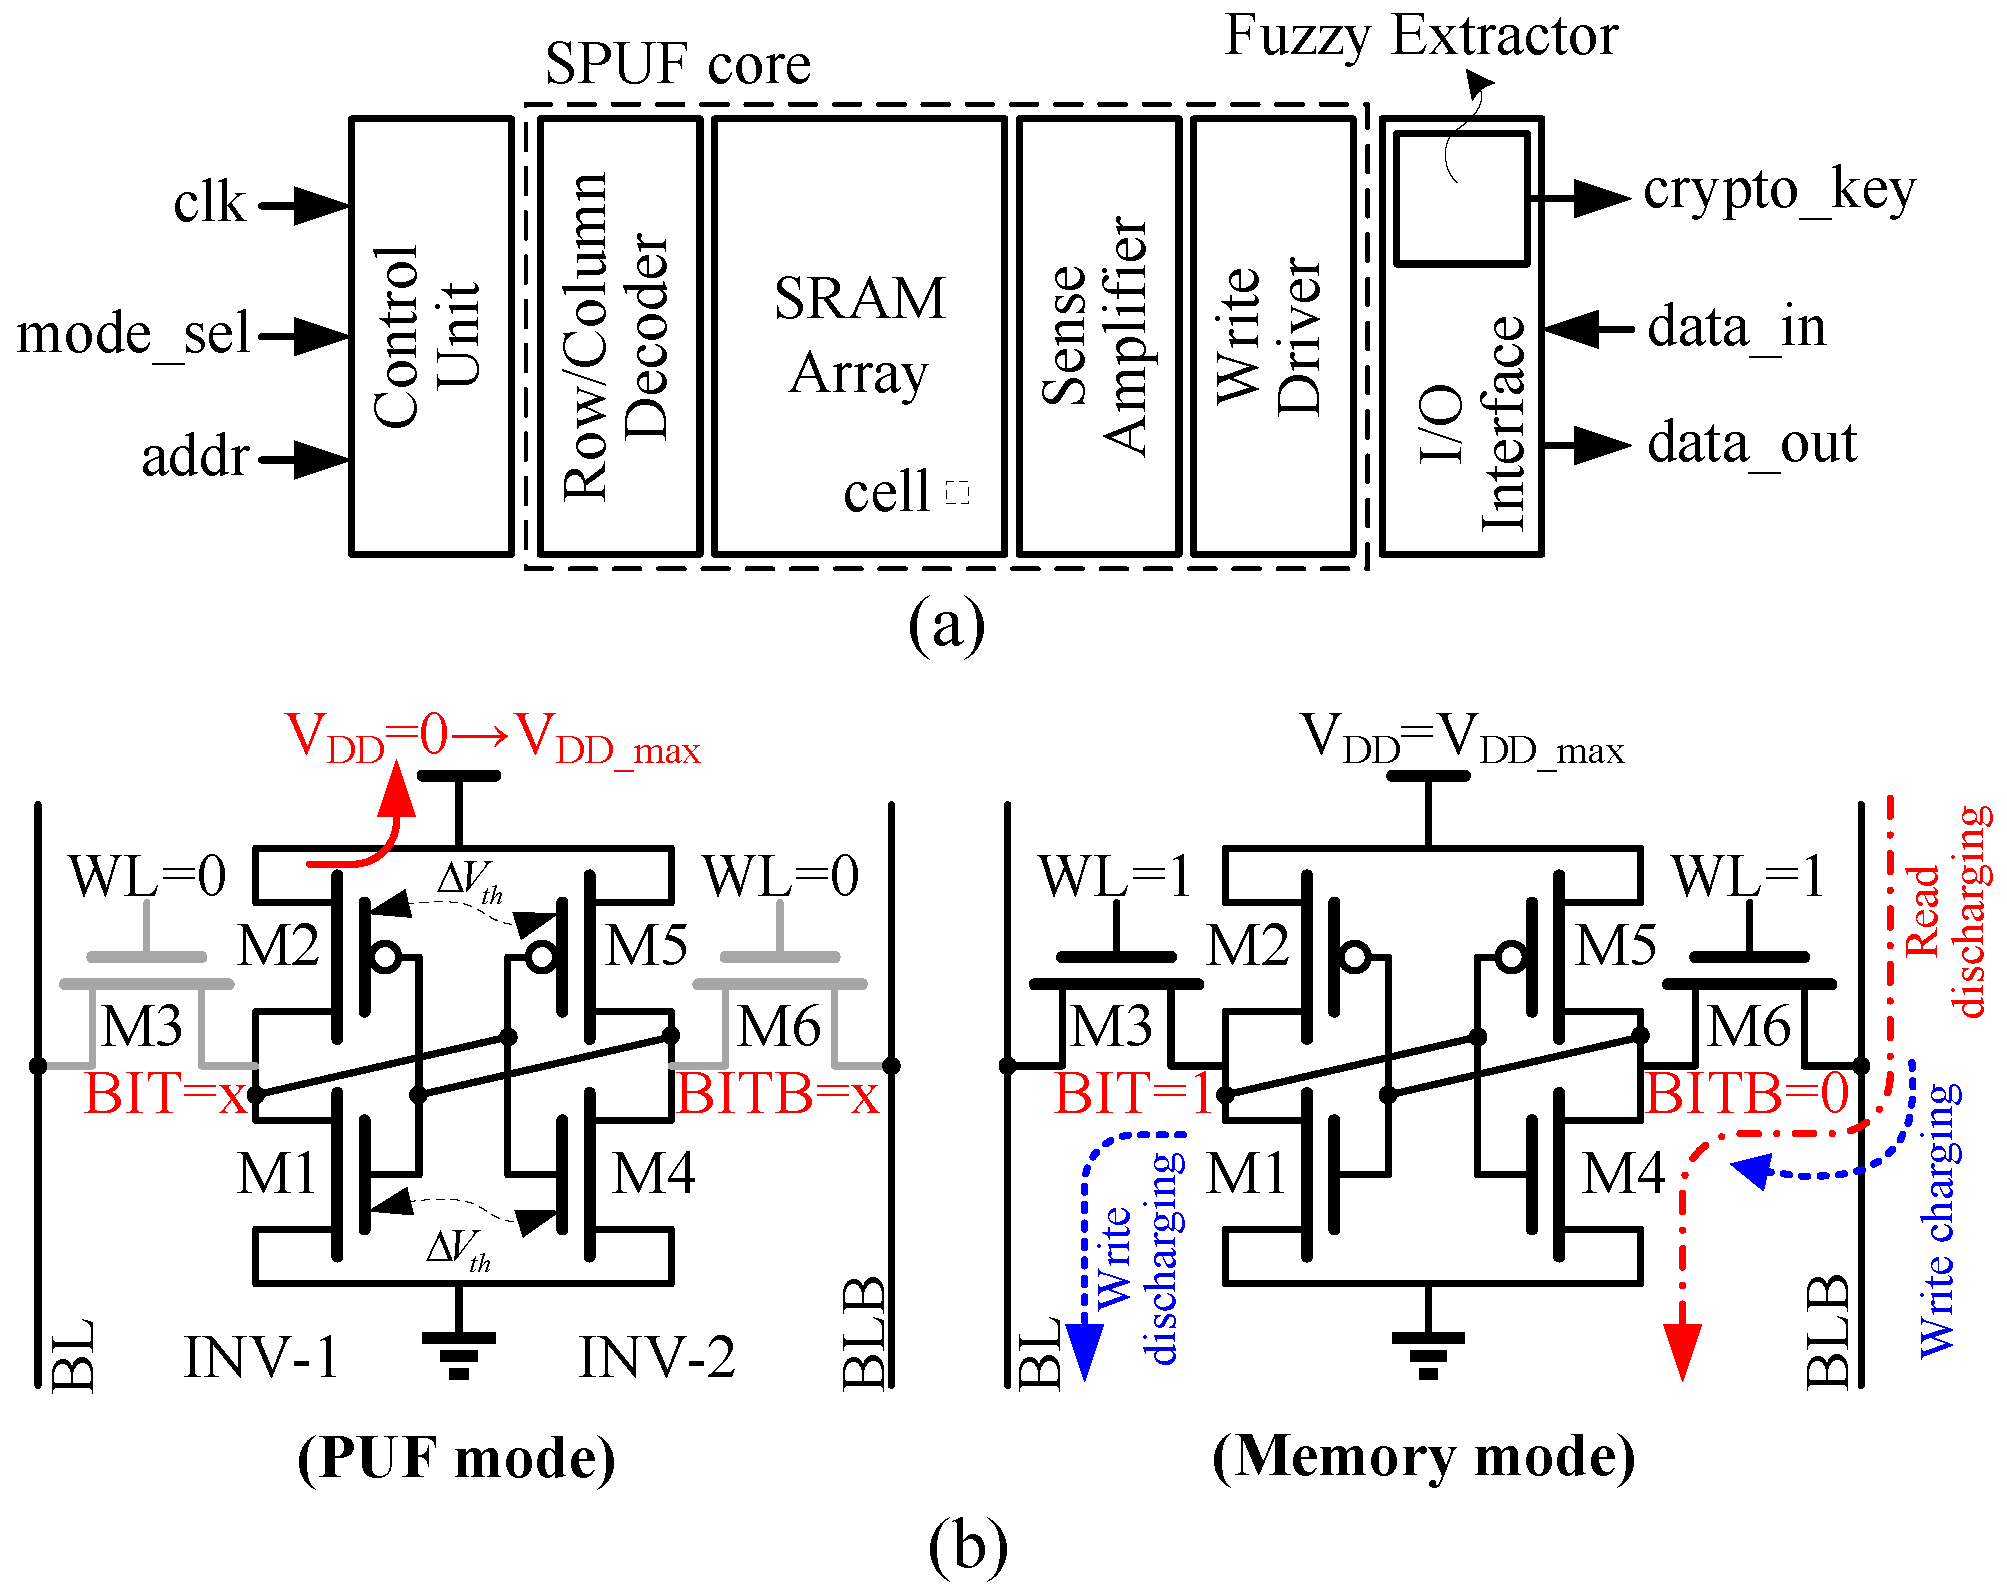 Logic Diagram Of Static Ram Cell Control Wiring Diagrams Jlpea Free Full Text Sizing Sram With Voltage Biasing Circuit